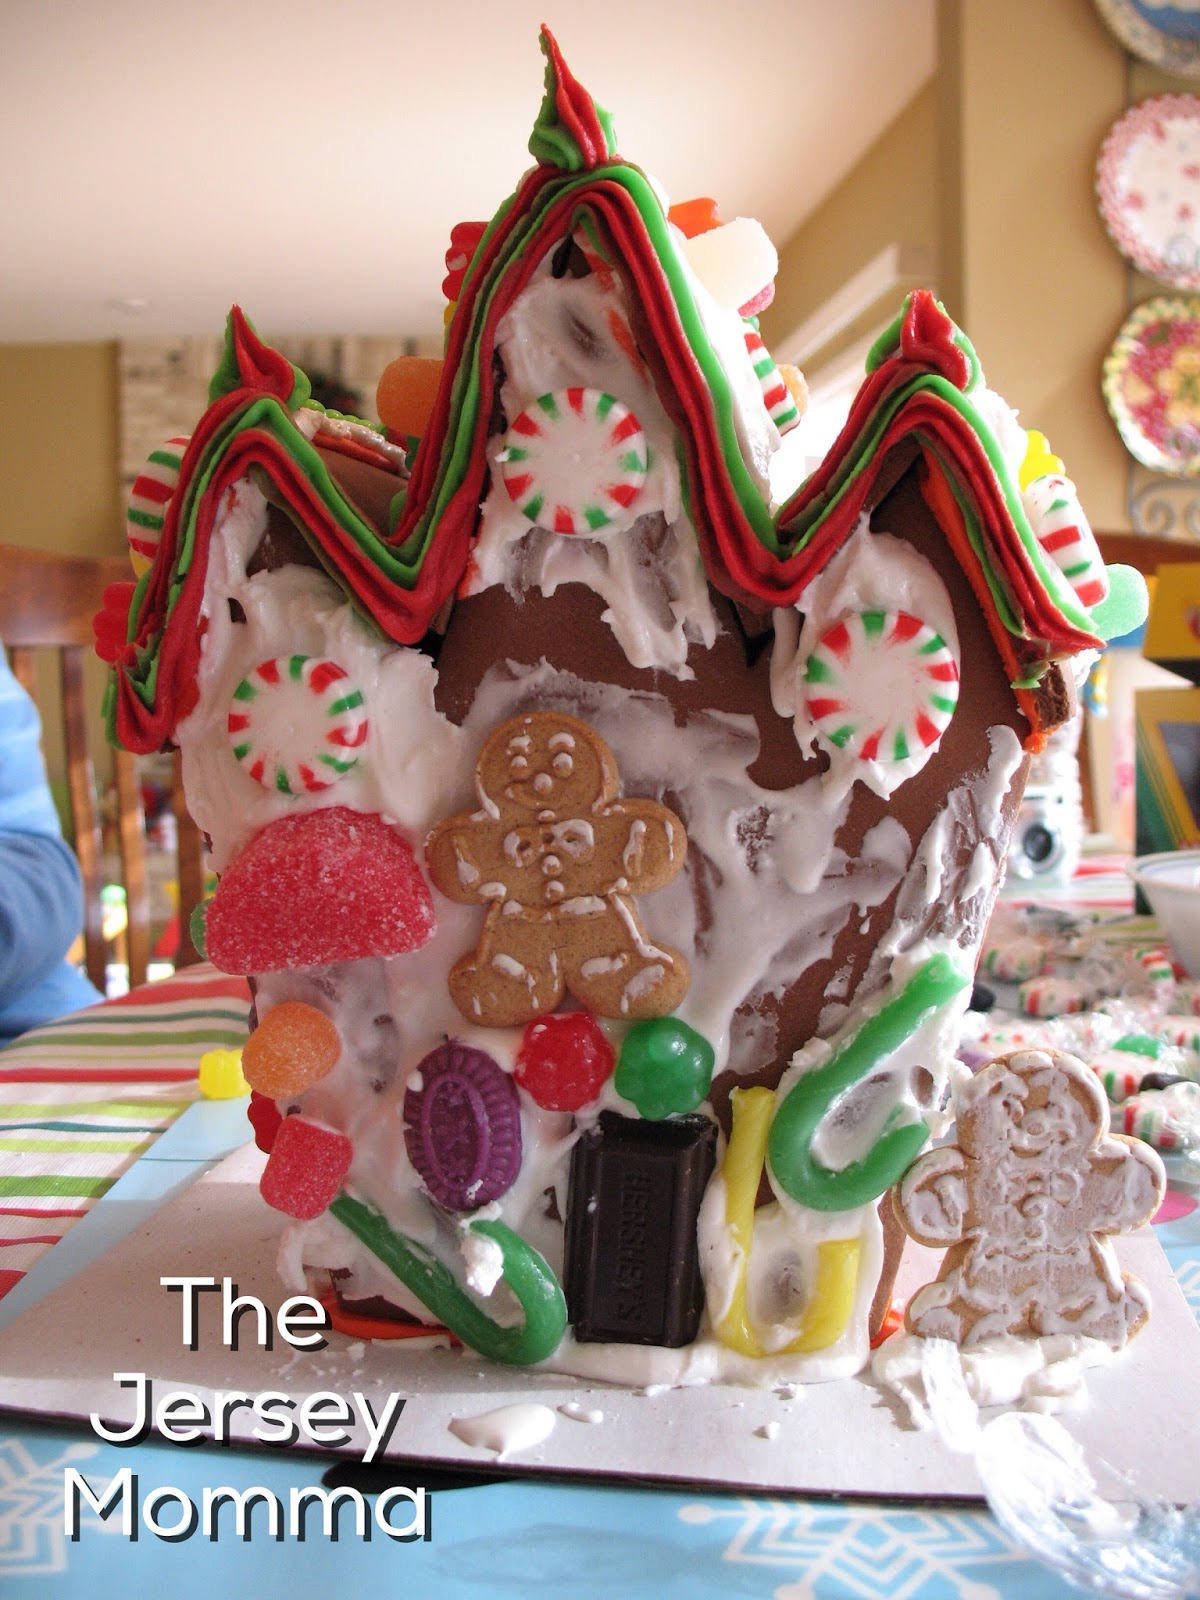 this house was created using a halloween gingerbread house kit from the previous year